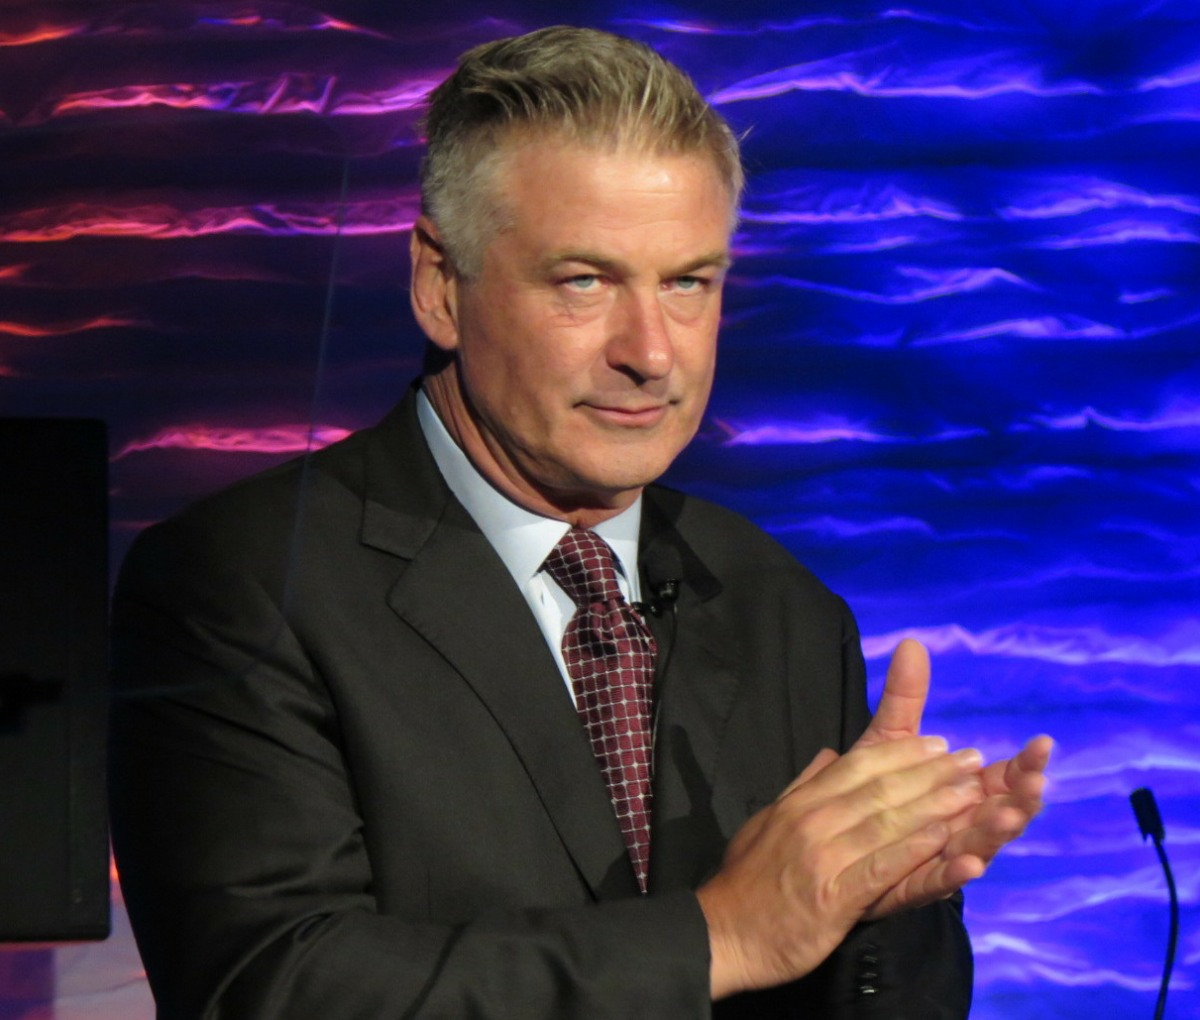 Alec Baldwin attends the National Geographic Ocean Experience in Times Square, New York